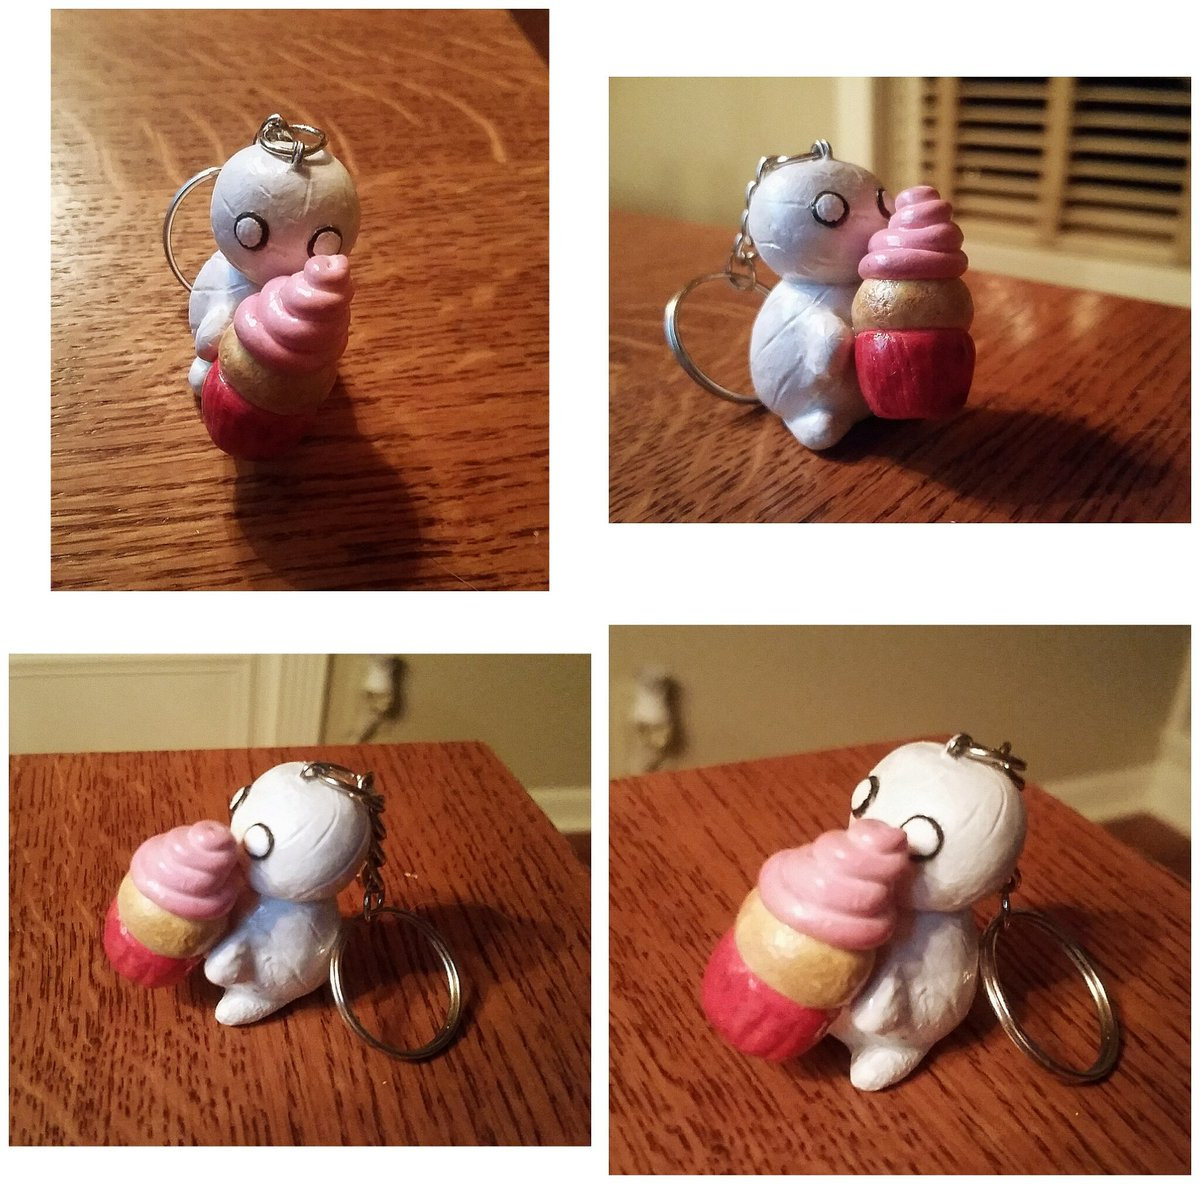 Brookemadar On Twitter A Key Chain I Made For My Friend S Birthday The Character Is Mii Kun From How To Keep A Mummy Also Known As Miira No Kaikata Really Cute And Highly Curious to see the others appear in this he sends him a mummy as he found it cute and thinks sora will like it. mii kun from how to keep a mummy